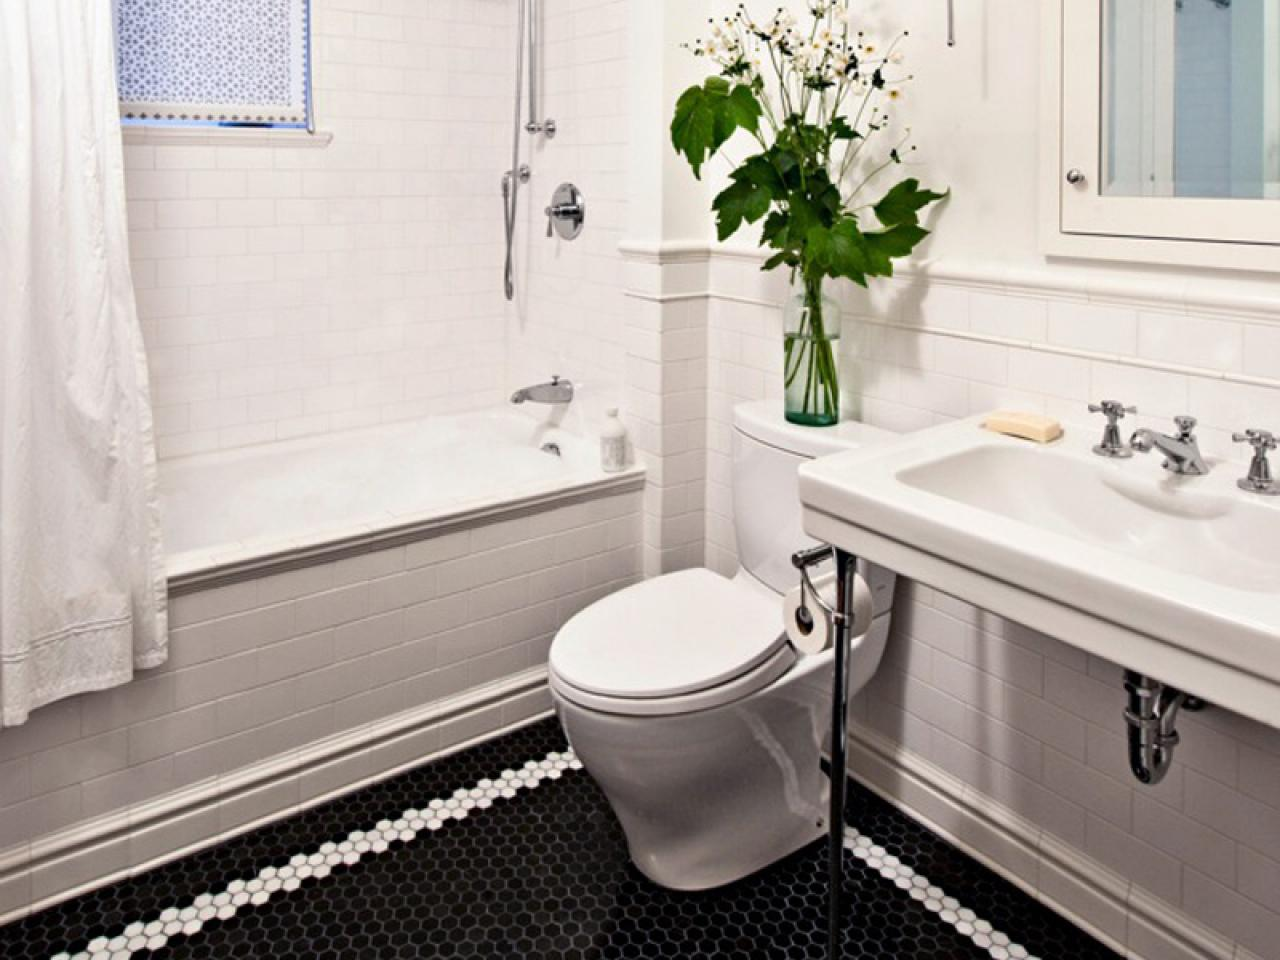 23 nice ideas and pictures of basketweave bathroom tile Bathroom flooring tile